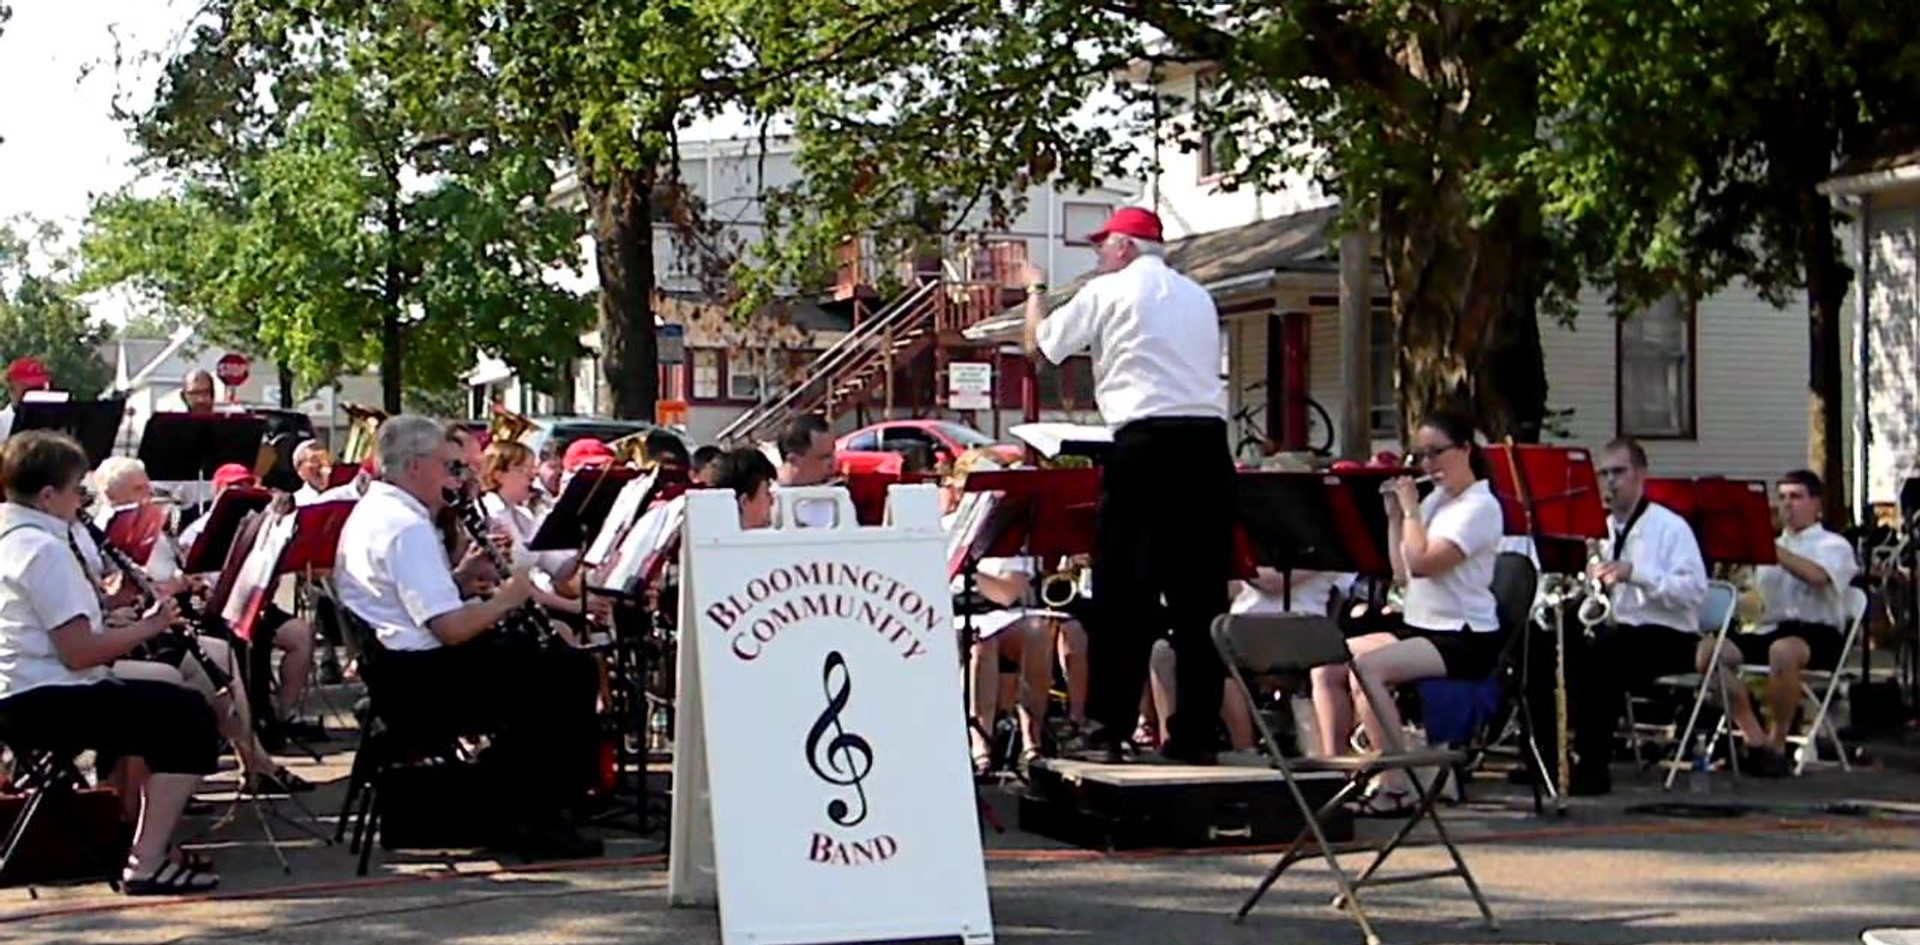 Bloomington Community Band